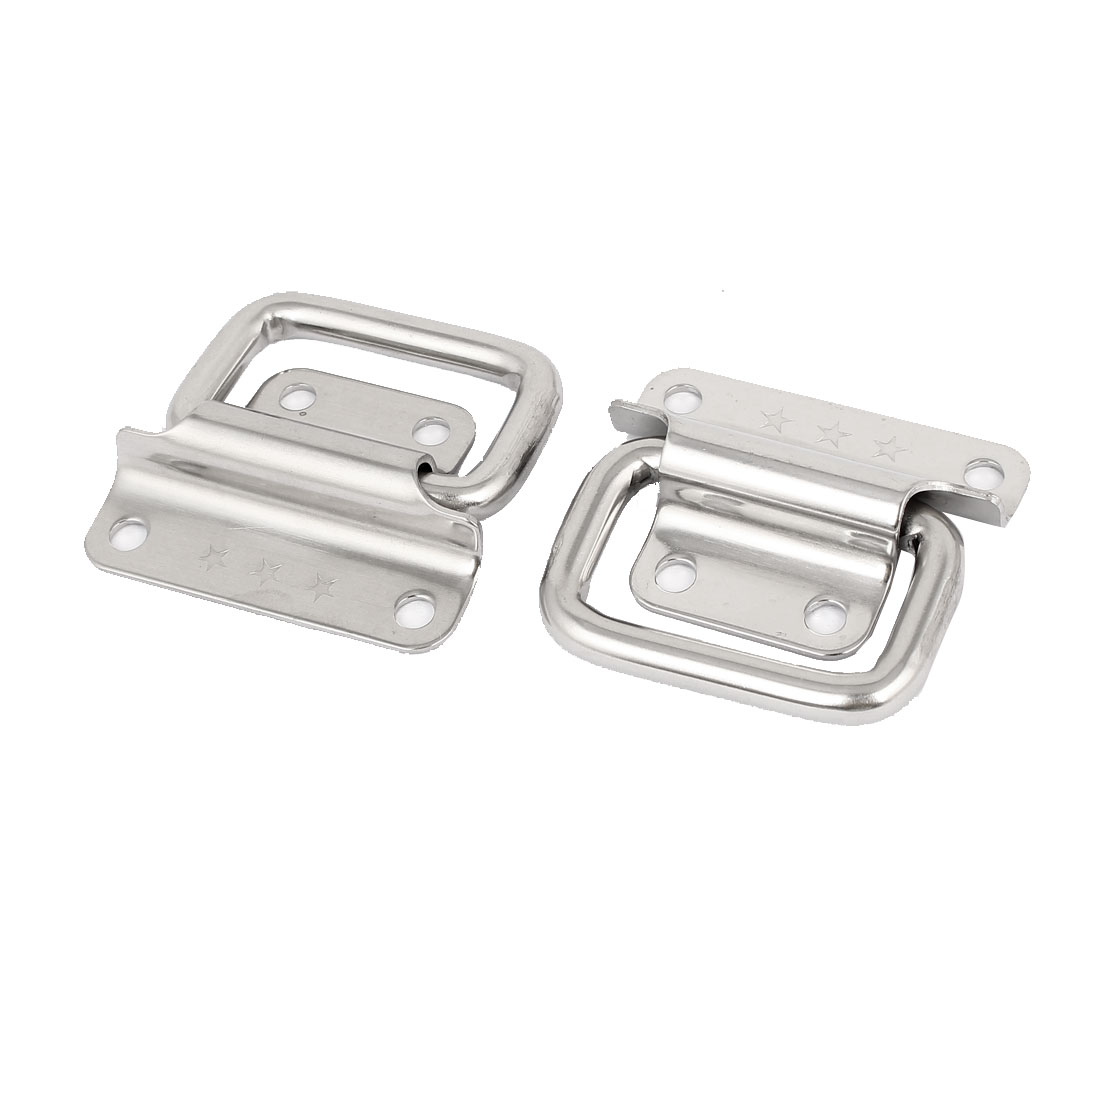 "Toolbox Stainless Steel 90-Degree Puller Chest Handle Silver Tone 2"" Length 2pcs"